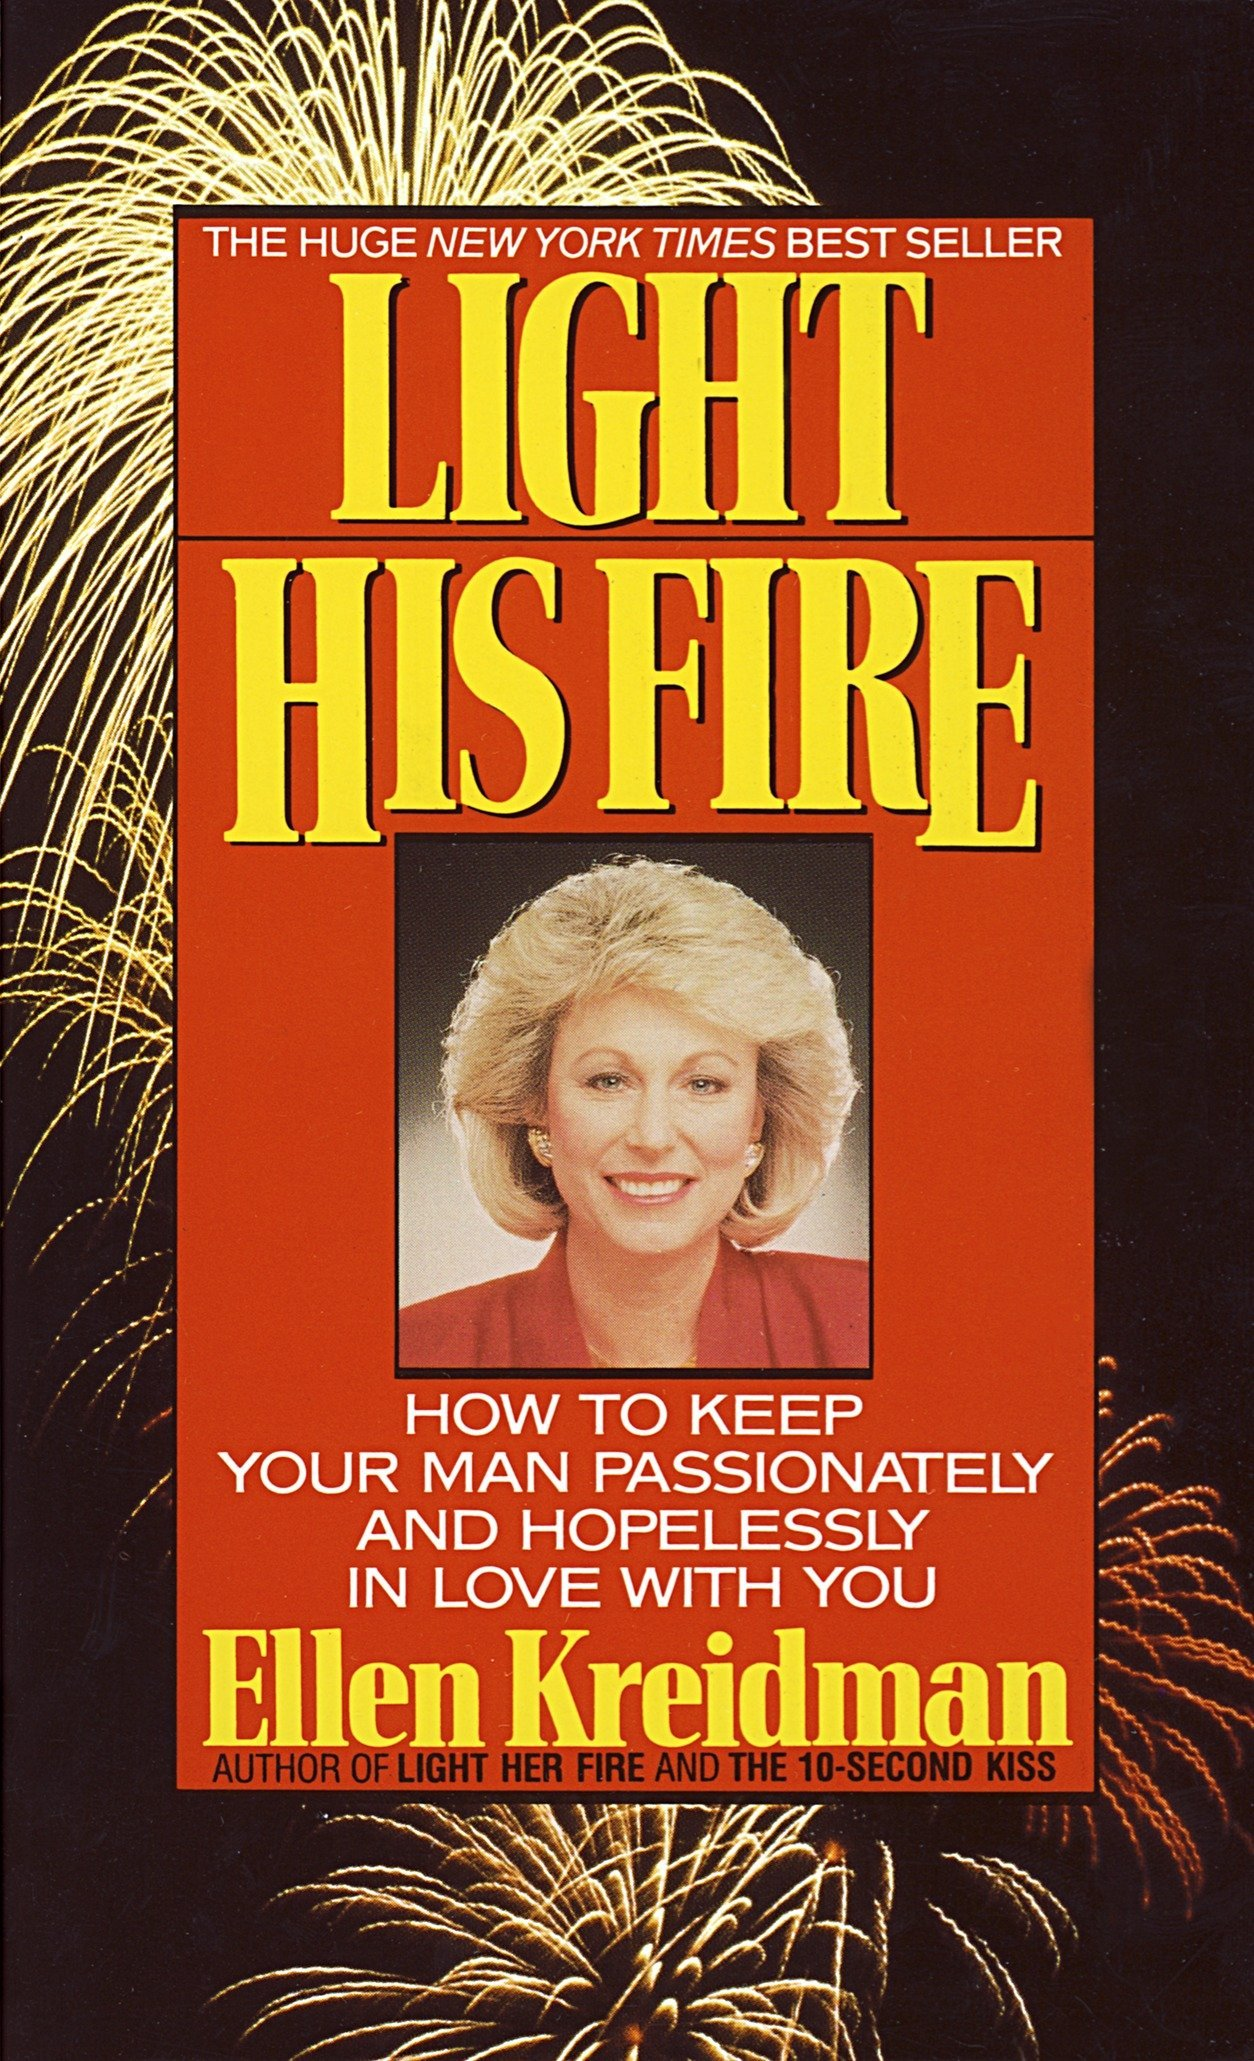 Light His Fire: How to Keep Your Man Passionately and Hopelessly in Love  With You: Ellen Kreidman: 9780440207535: Amazon.com: Books